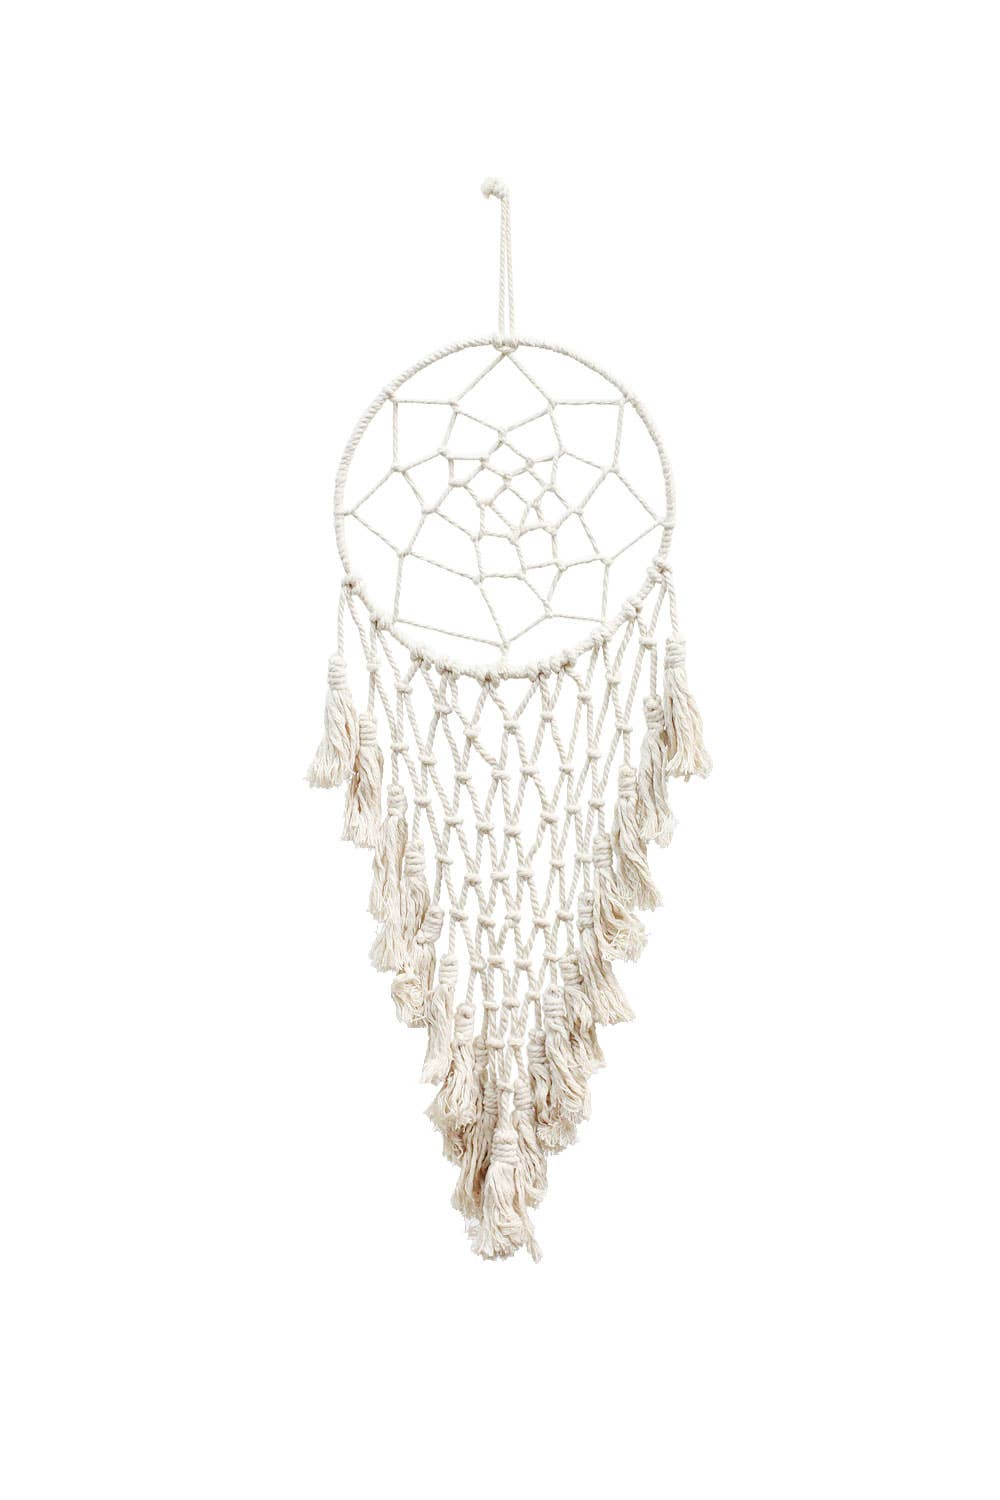 Soul of the Party - Macrame Dreamcatcher with Tassels